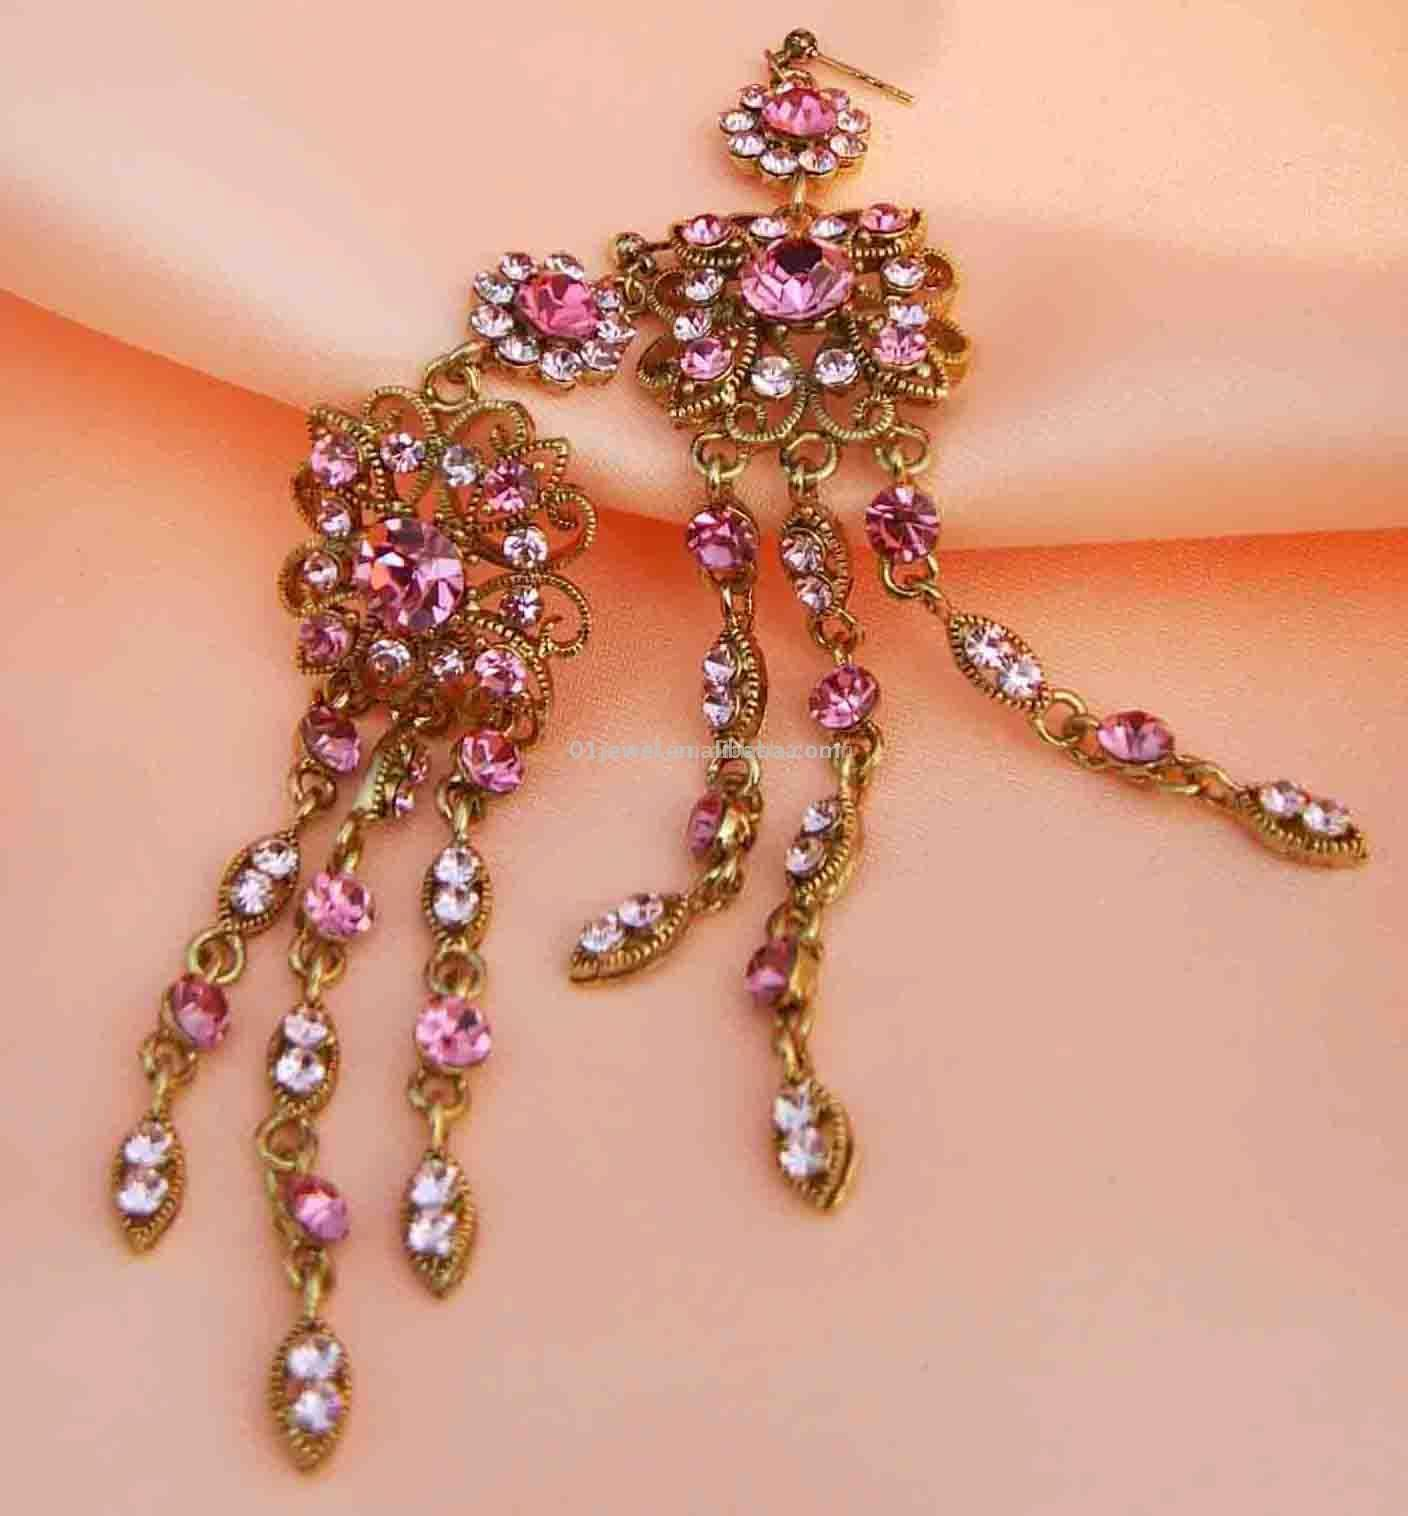 Czechic Rhinestone Earrings